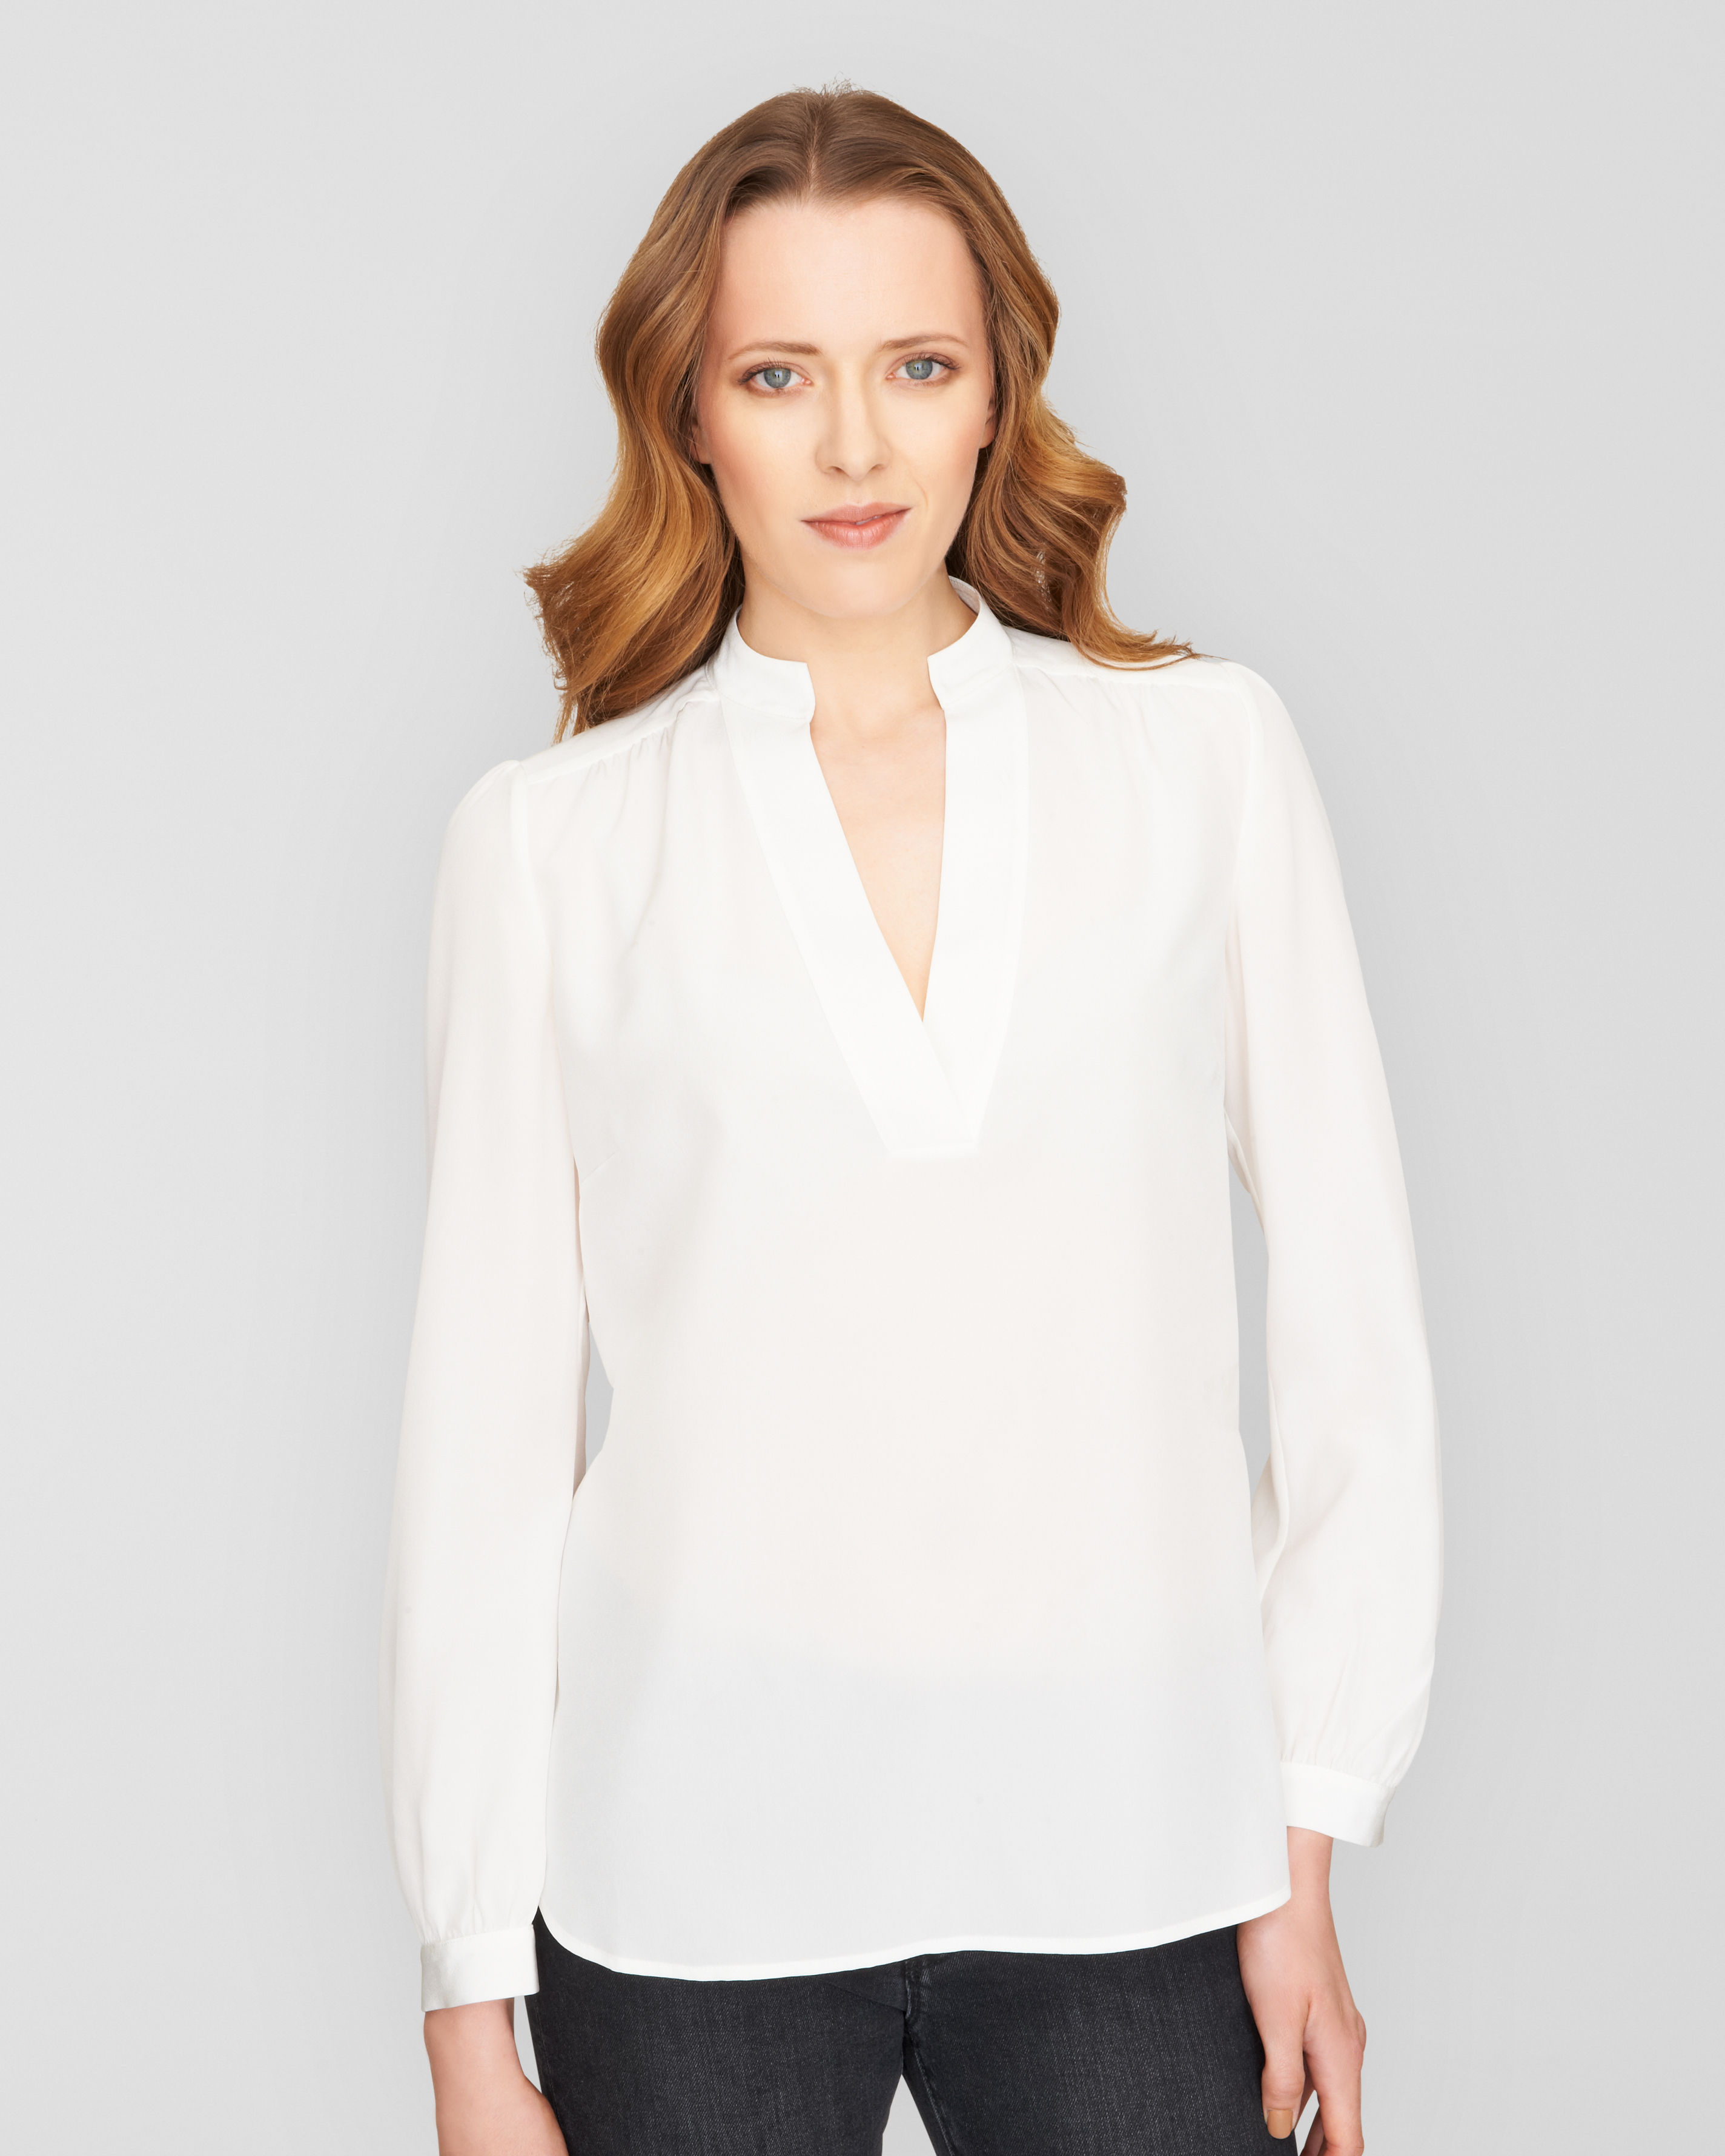 Stand Collar Blouse Designs Images : Lyst jaeger v neck stand collar blouse in white